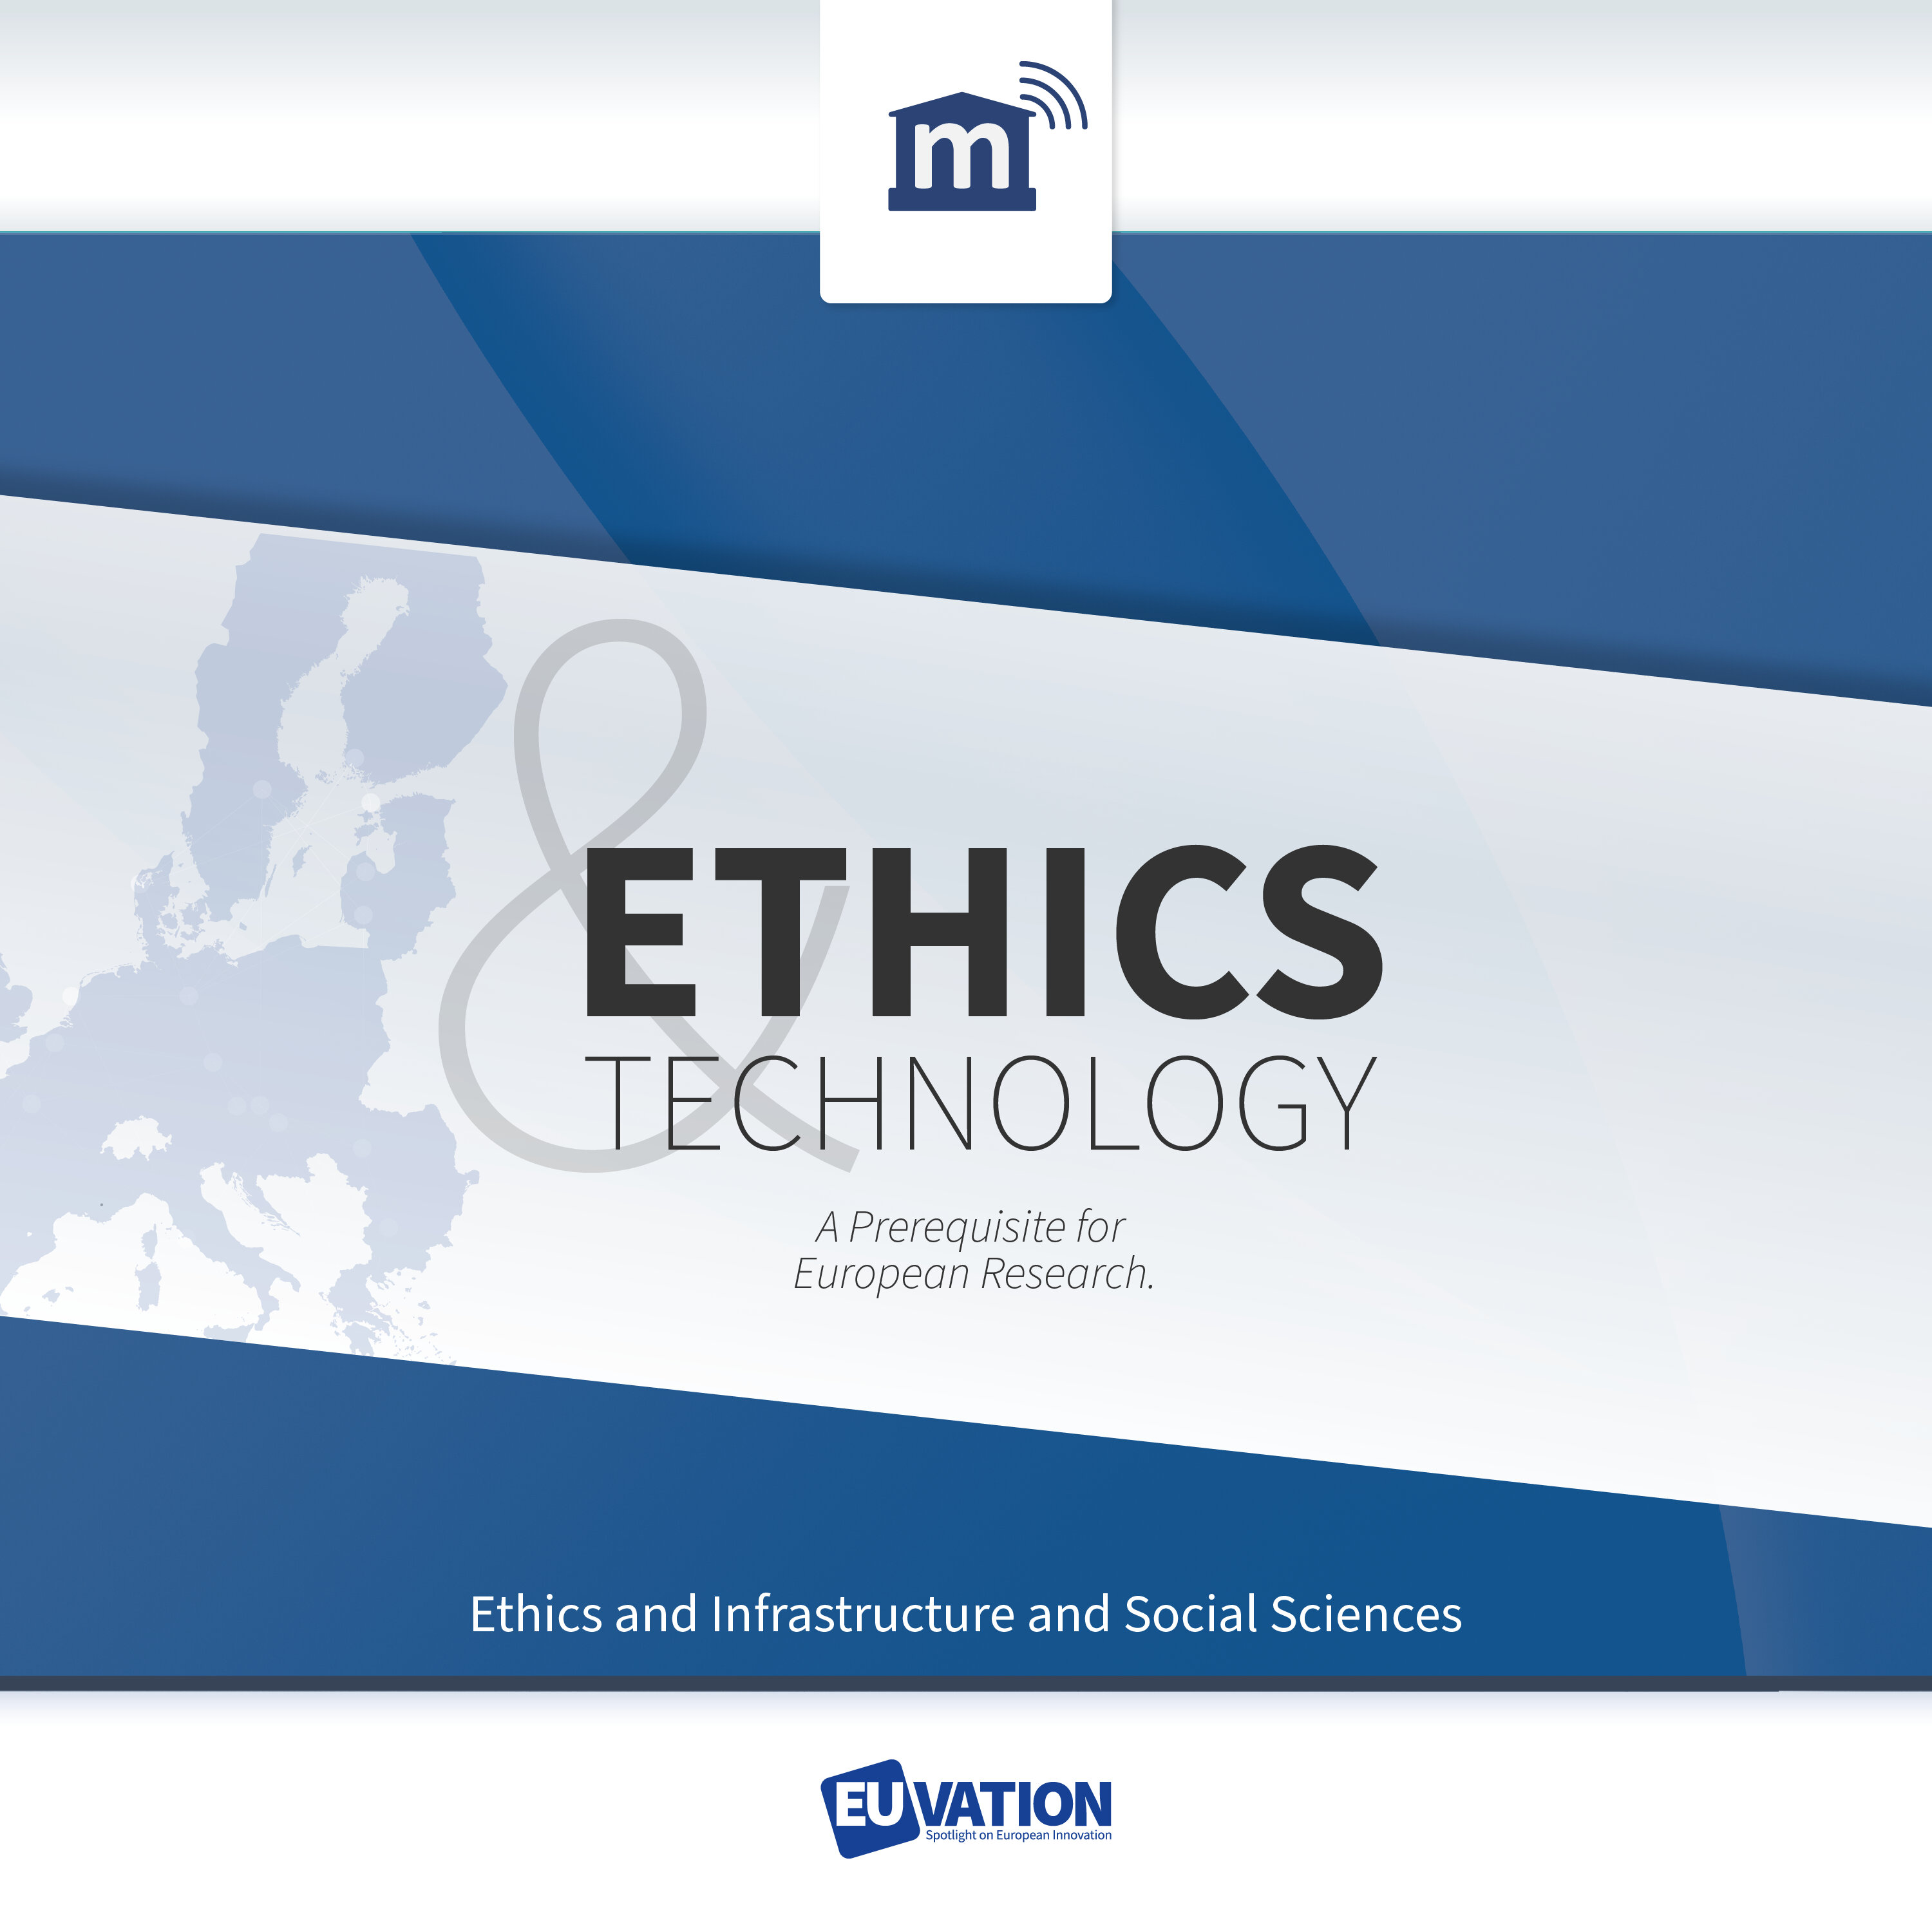 Ethics and Technology (2) – a Prerequisite for European Research: Infrastructure & Smart Mobility